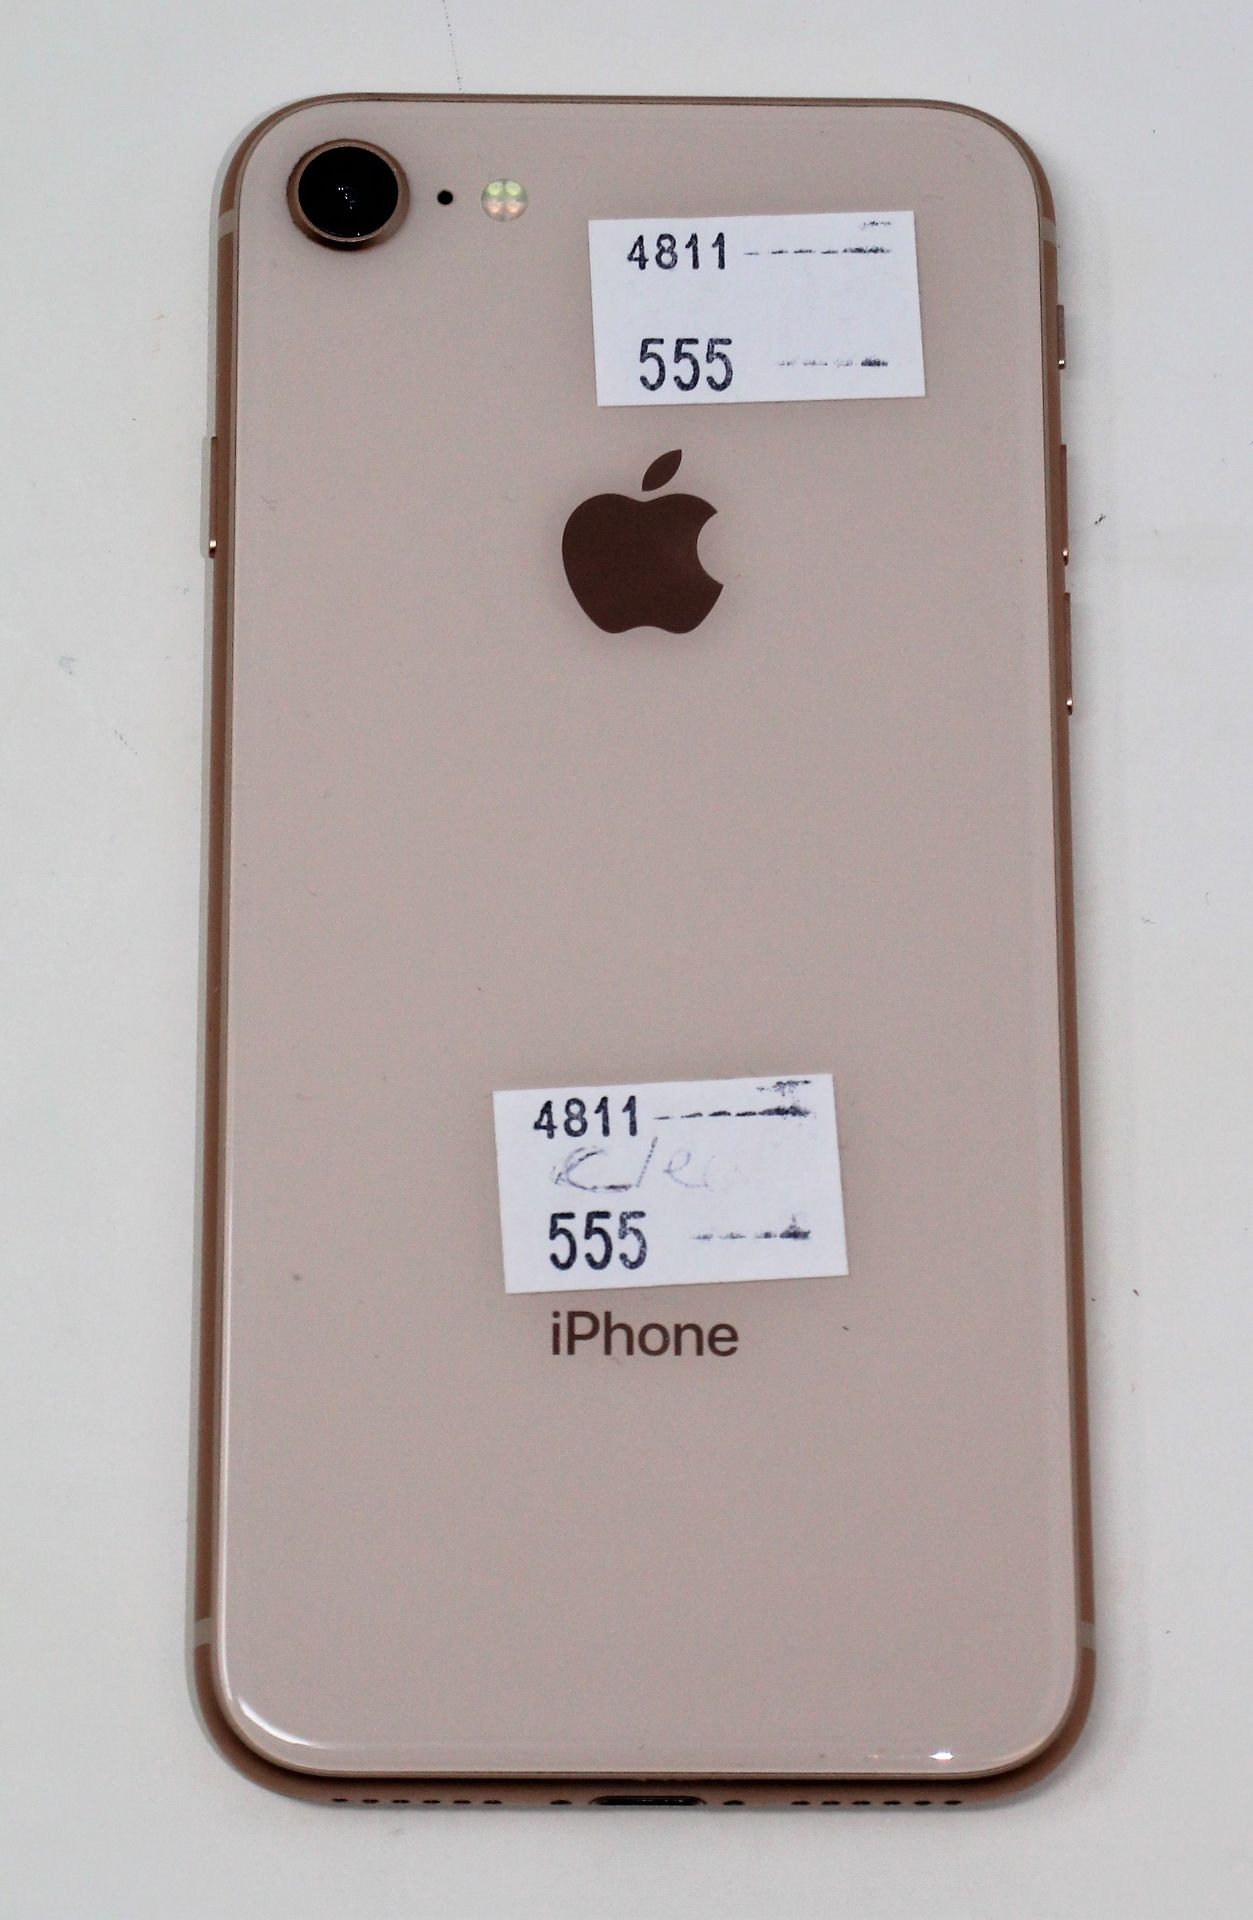 A pre-owned Apple iPhone 8 (AT&T/T-Mobile/Global/A1905) 64GB in Gold (iCloud activation clear) ( - Image 7 of 7